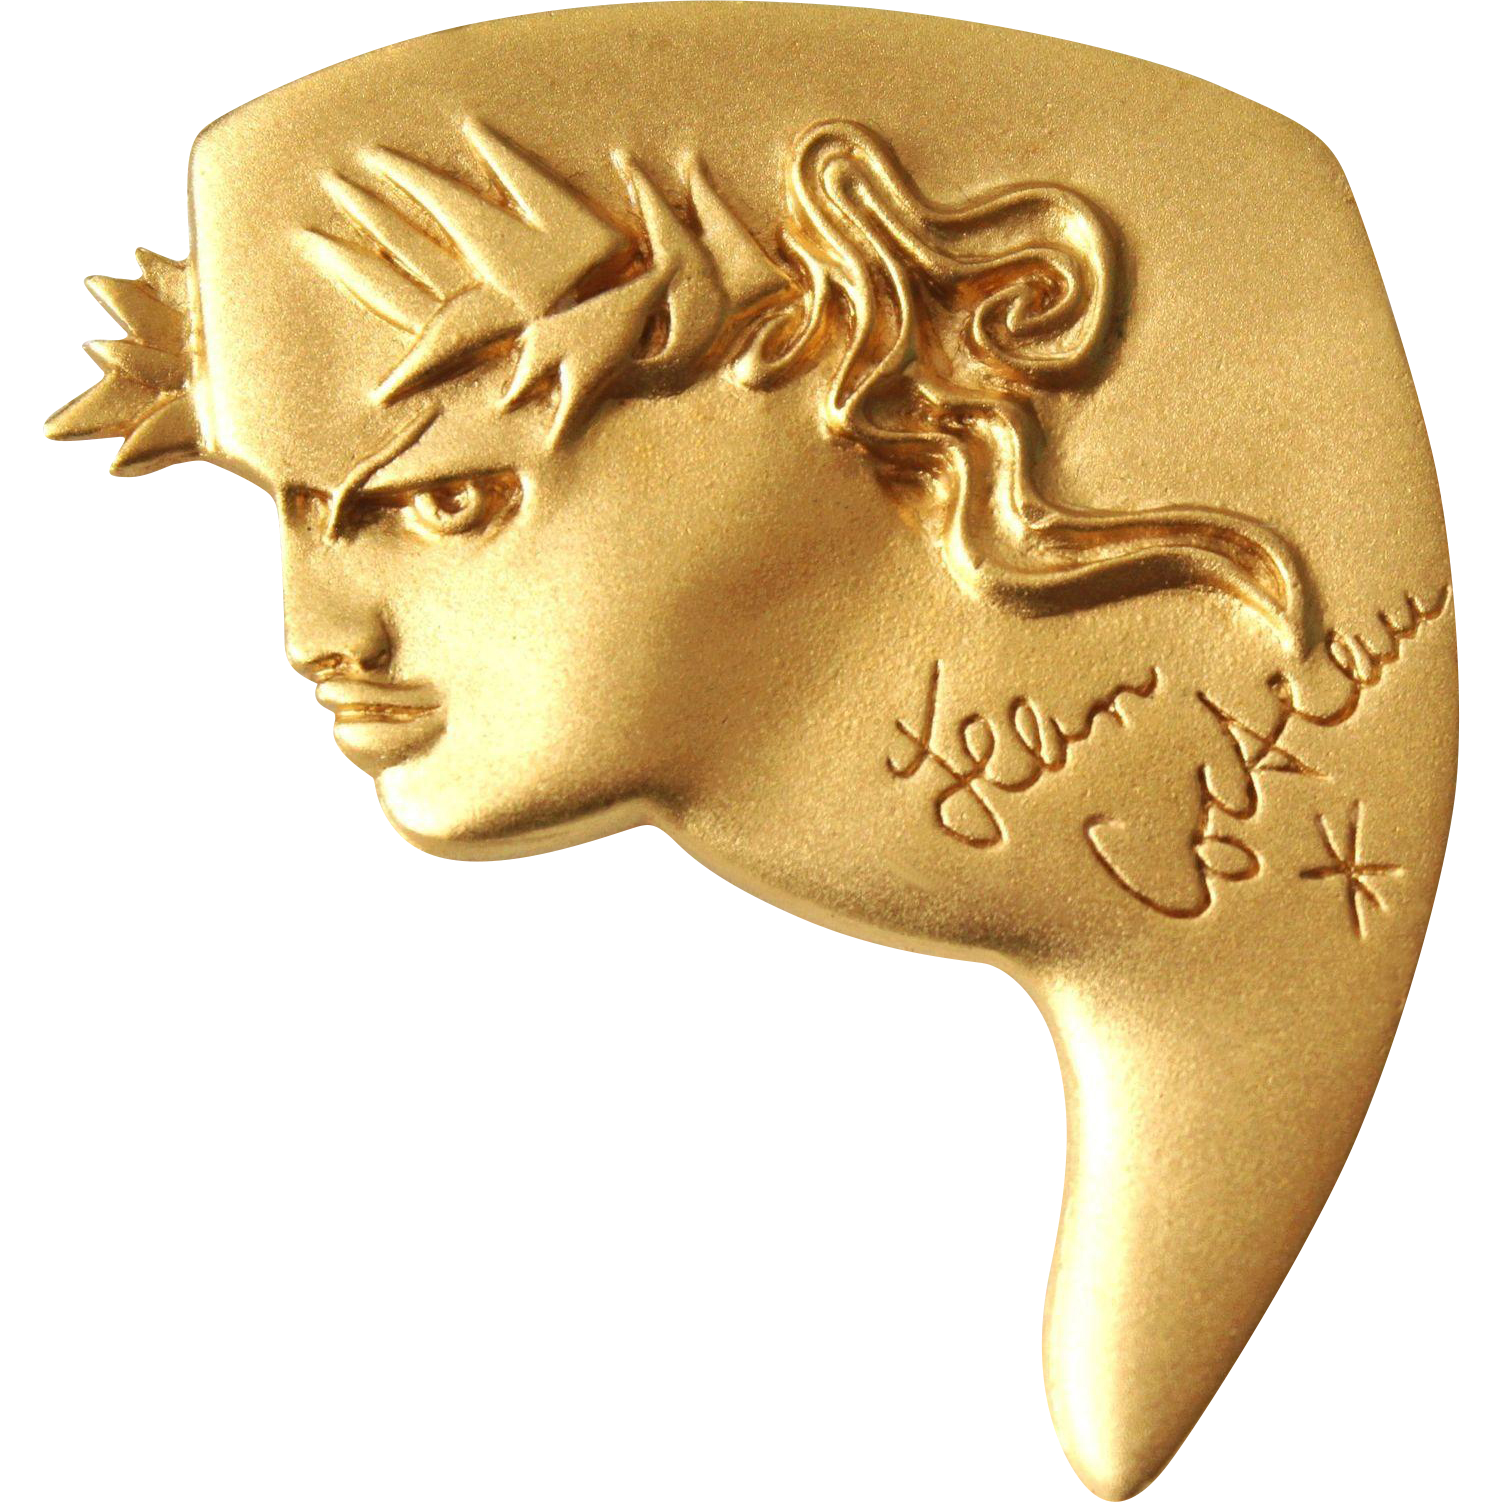 Very Rare Signed Jean-Cocteau 1997 Testement D'orphee Madeline-Flammarion Brooch